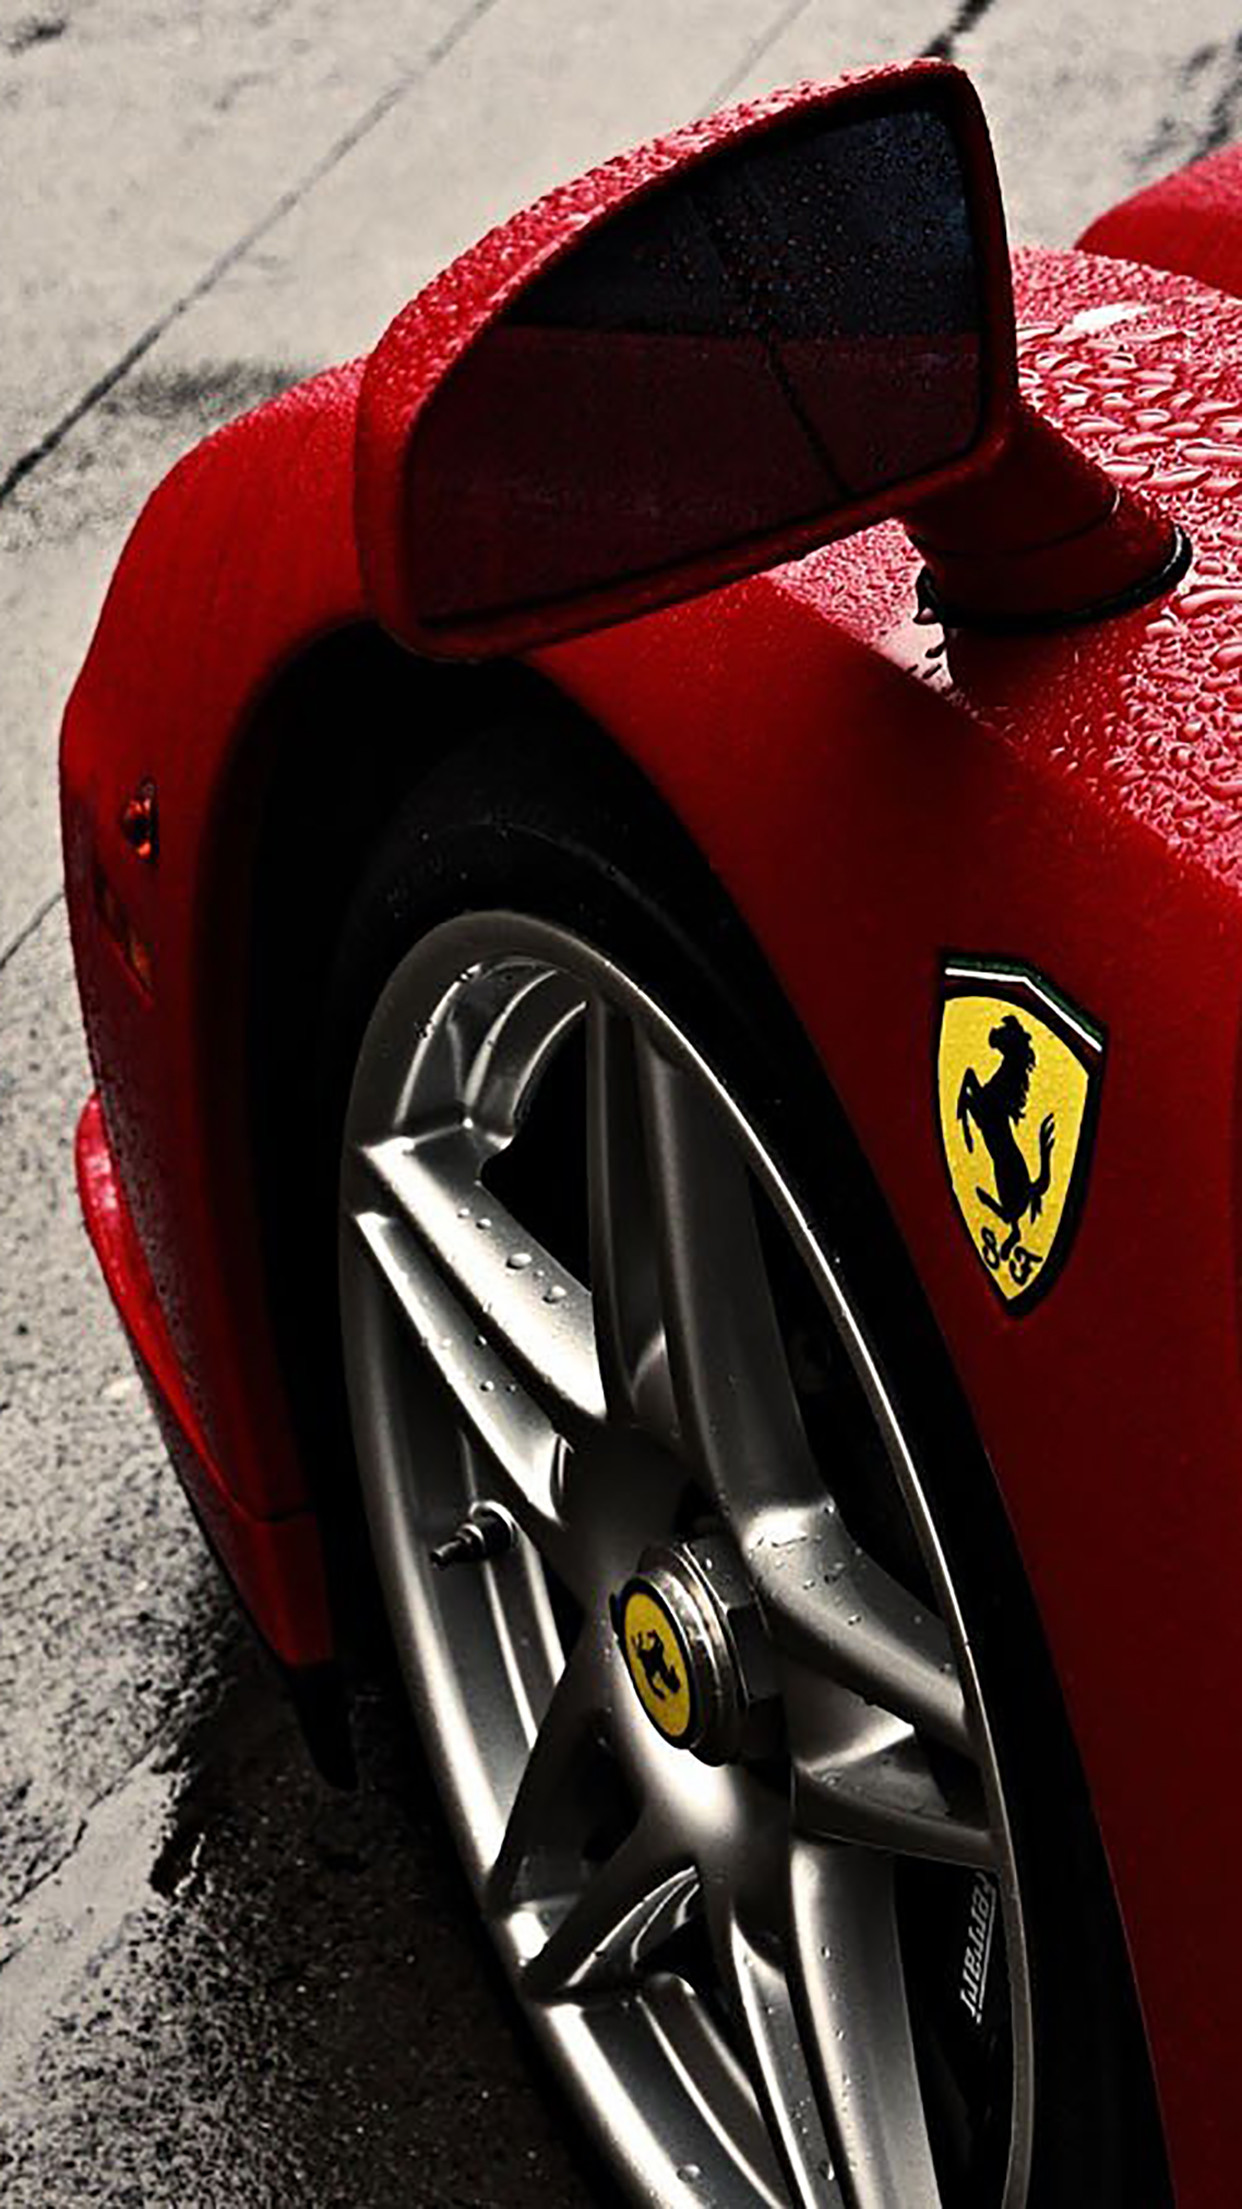 1242x2209 ferrari-enzo-ferrari-logo-rain-wheel-3wallpapers-iphone-